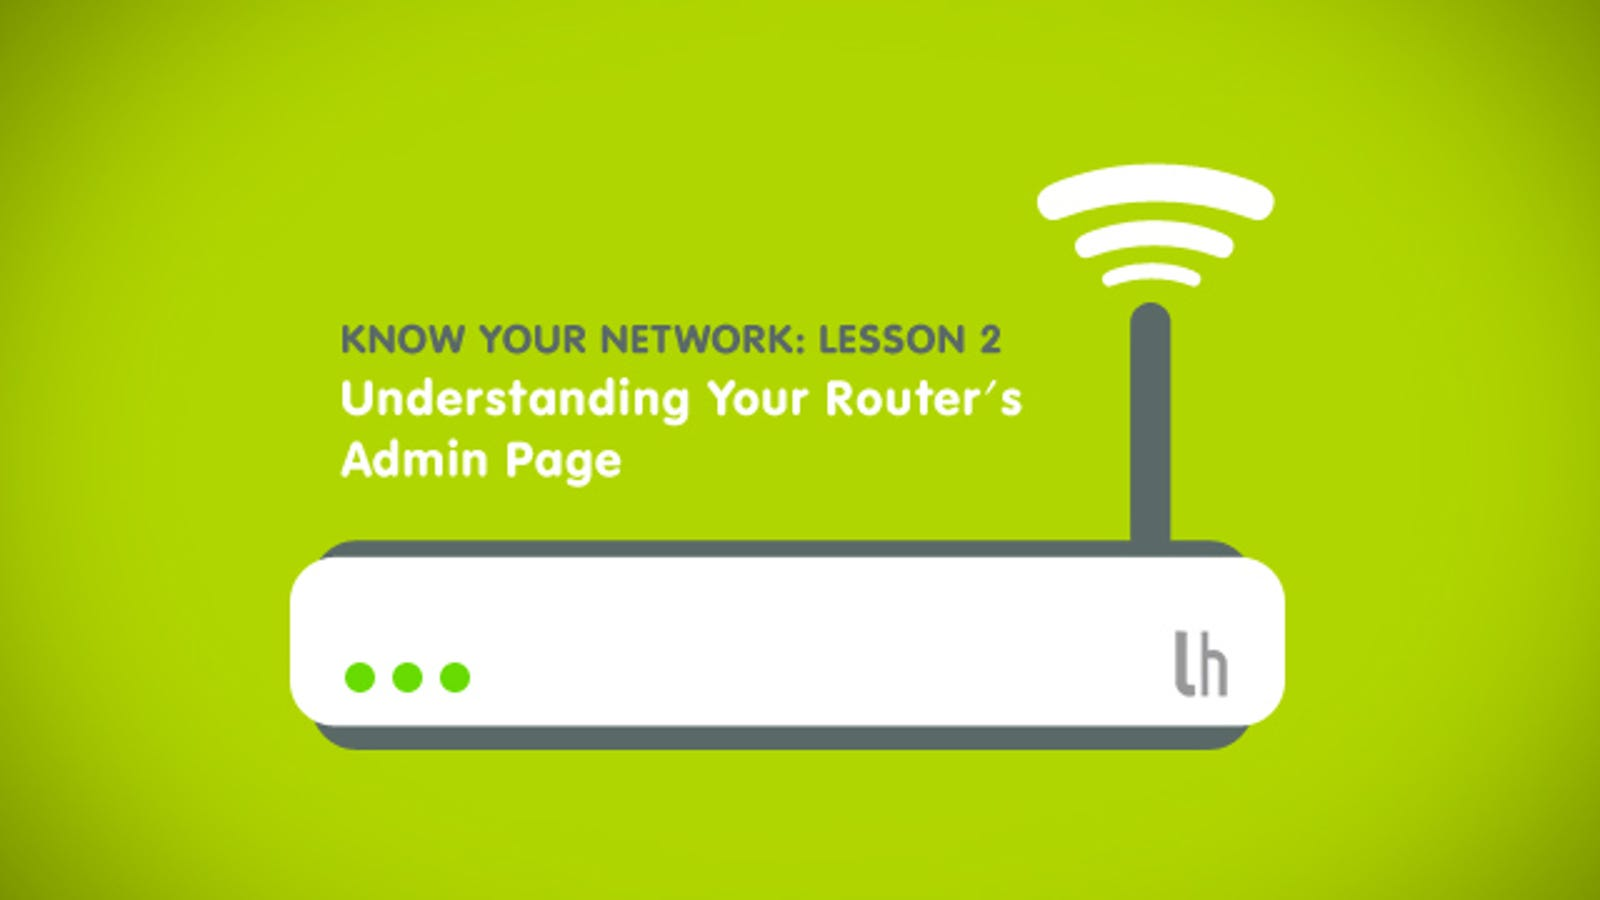 Know Your Network, Lesson 2: Understanding Your Router's